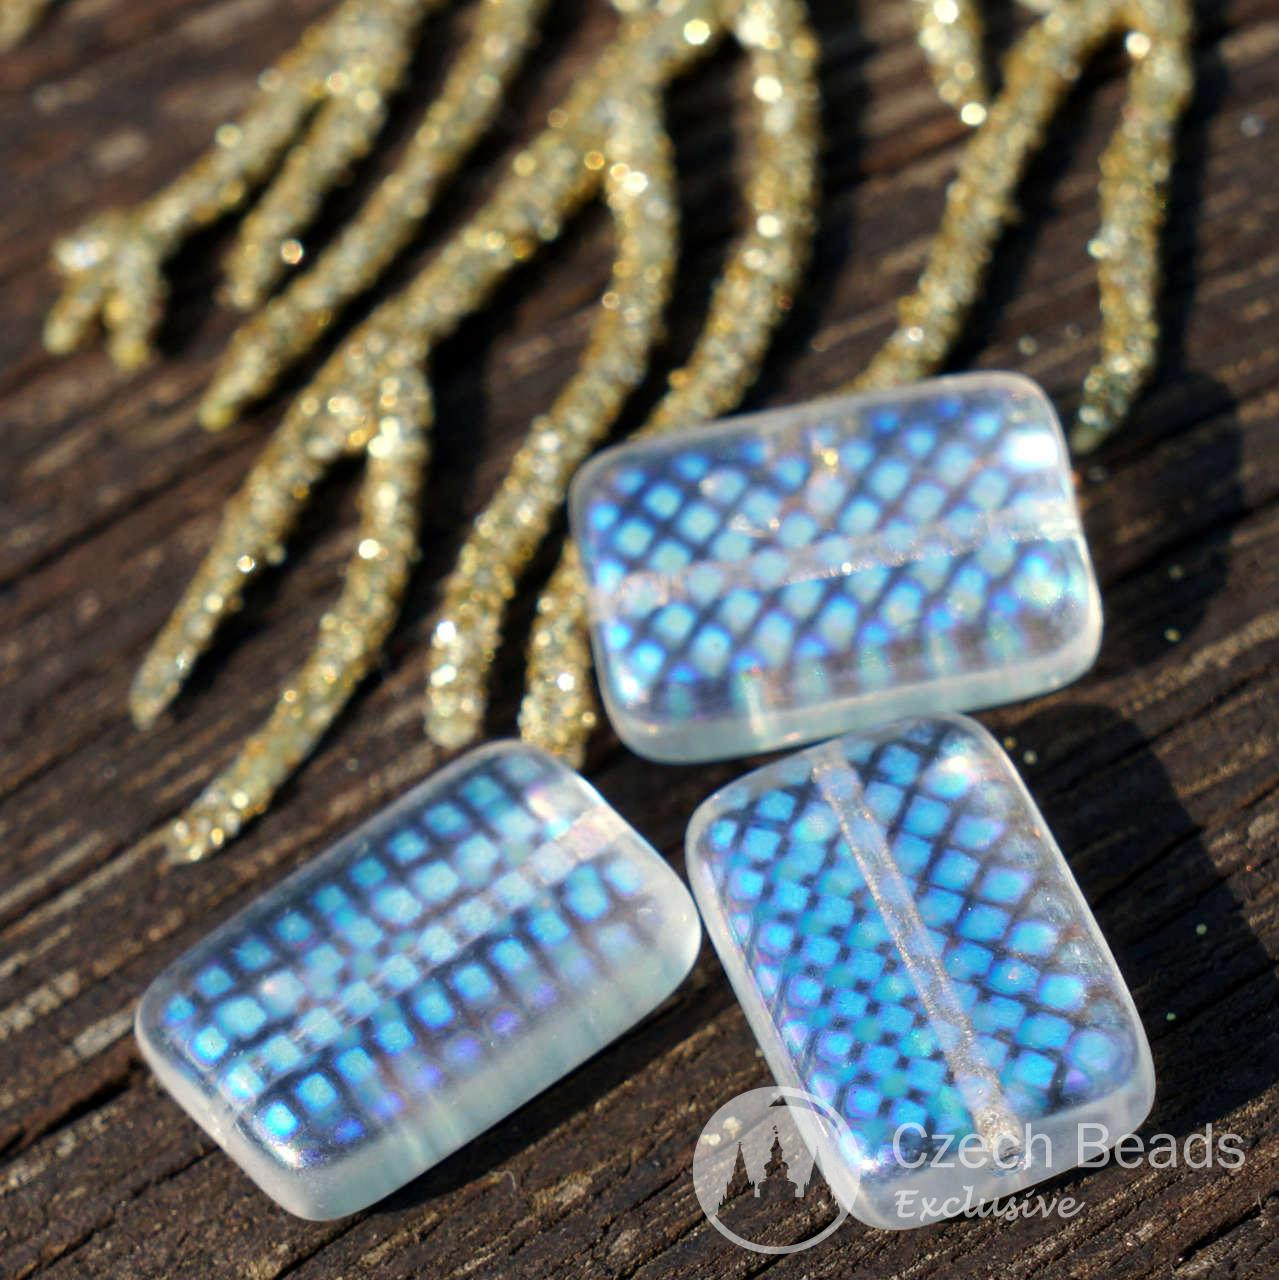 Clear AB Czech Glass Brick Rectangle Beads Czech Glass Beads AB Bohemian Beads Flat Rectangle Beads AB Peacock Glass Beads 14mm x 10mm 6pc for $2.33 from Czech Beads Exclusive